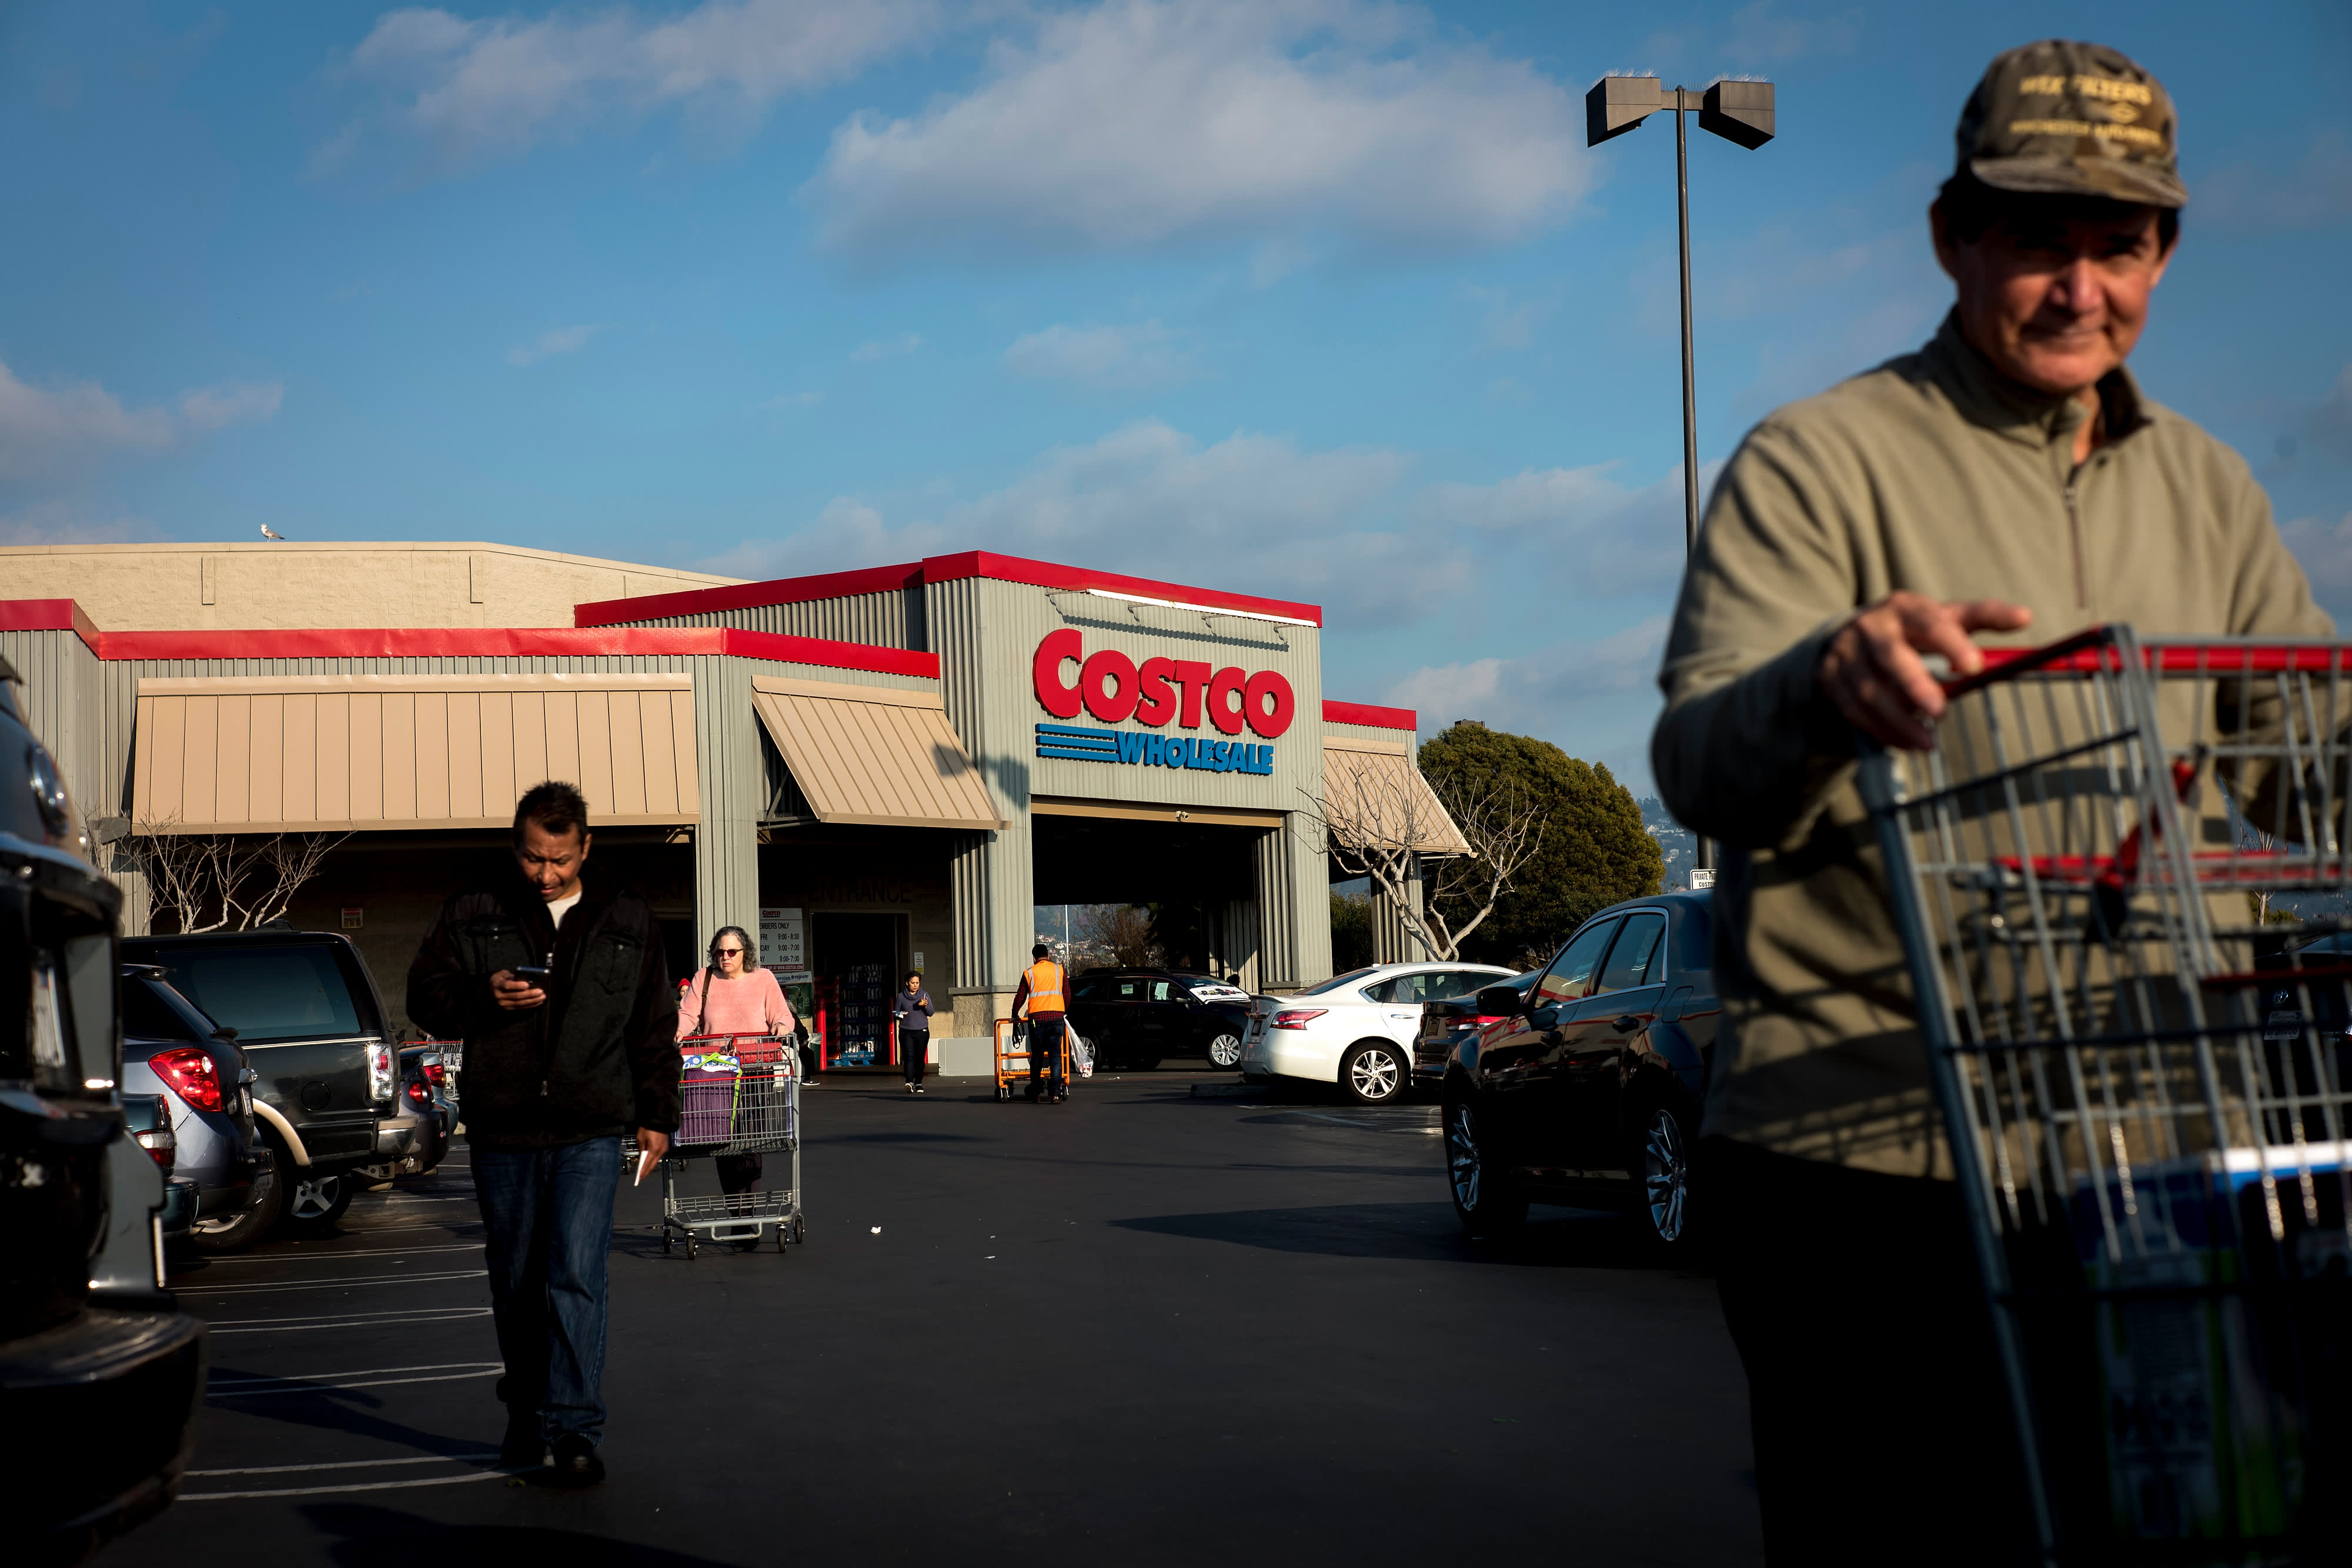 Stocks making the biggest moves after hours: Costco, Smart Global, Avaya and more